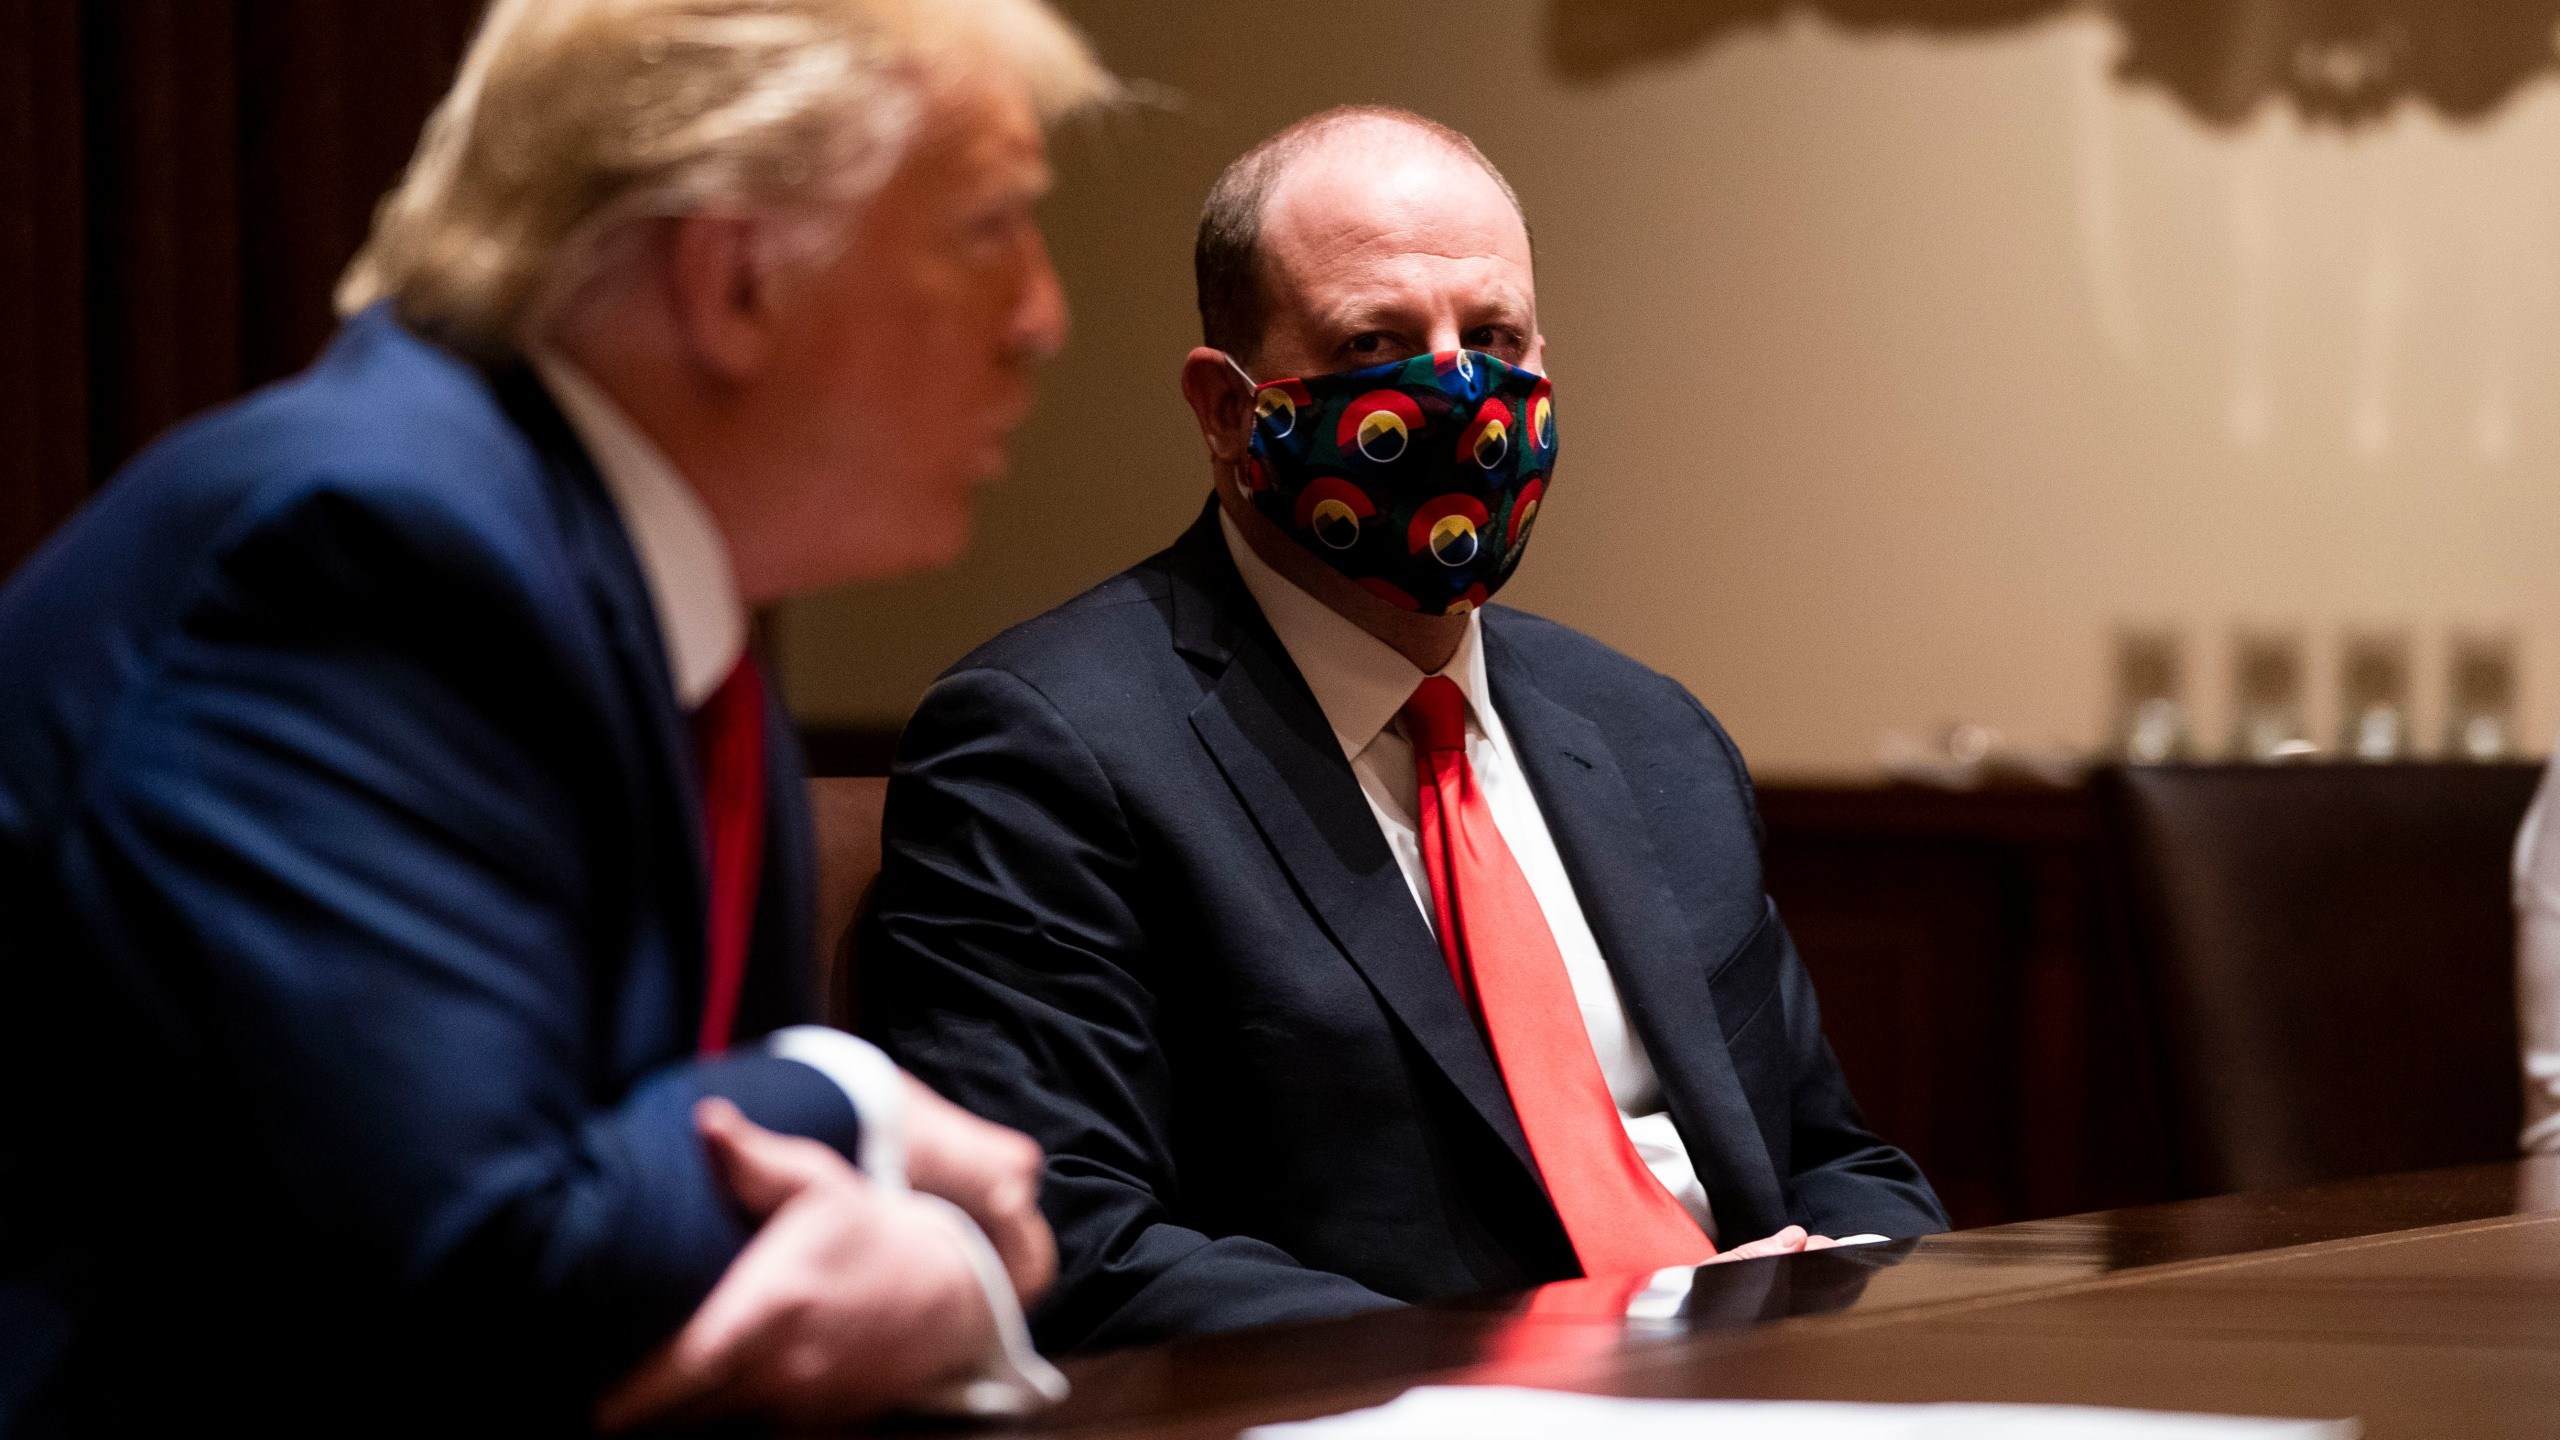 Colorado Governor Jared Polis wears a face mask as U.S. President Donald Trump makes remarks during a meeting in the Cabinet Room of the White House, May 13, 2020 in Washington, DC. (Photo by Doug Mills-Pool/Getty Images)